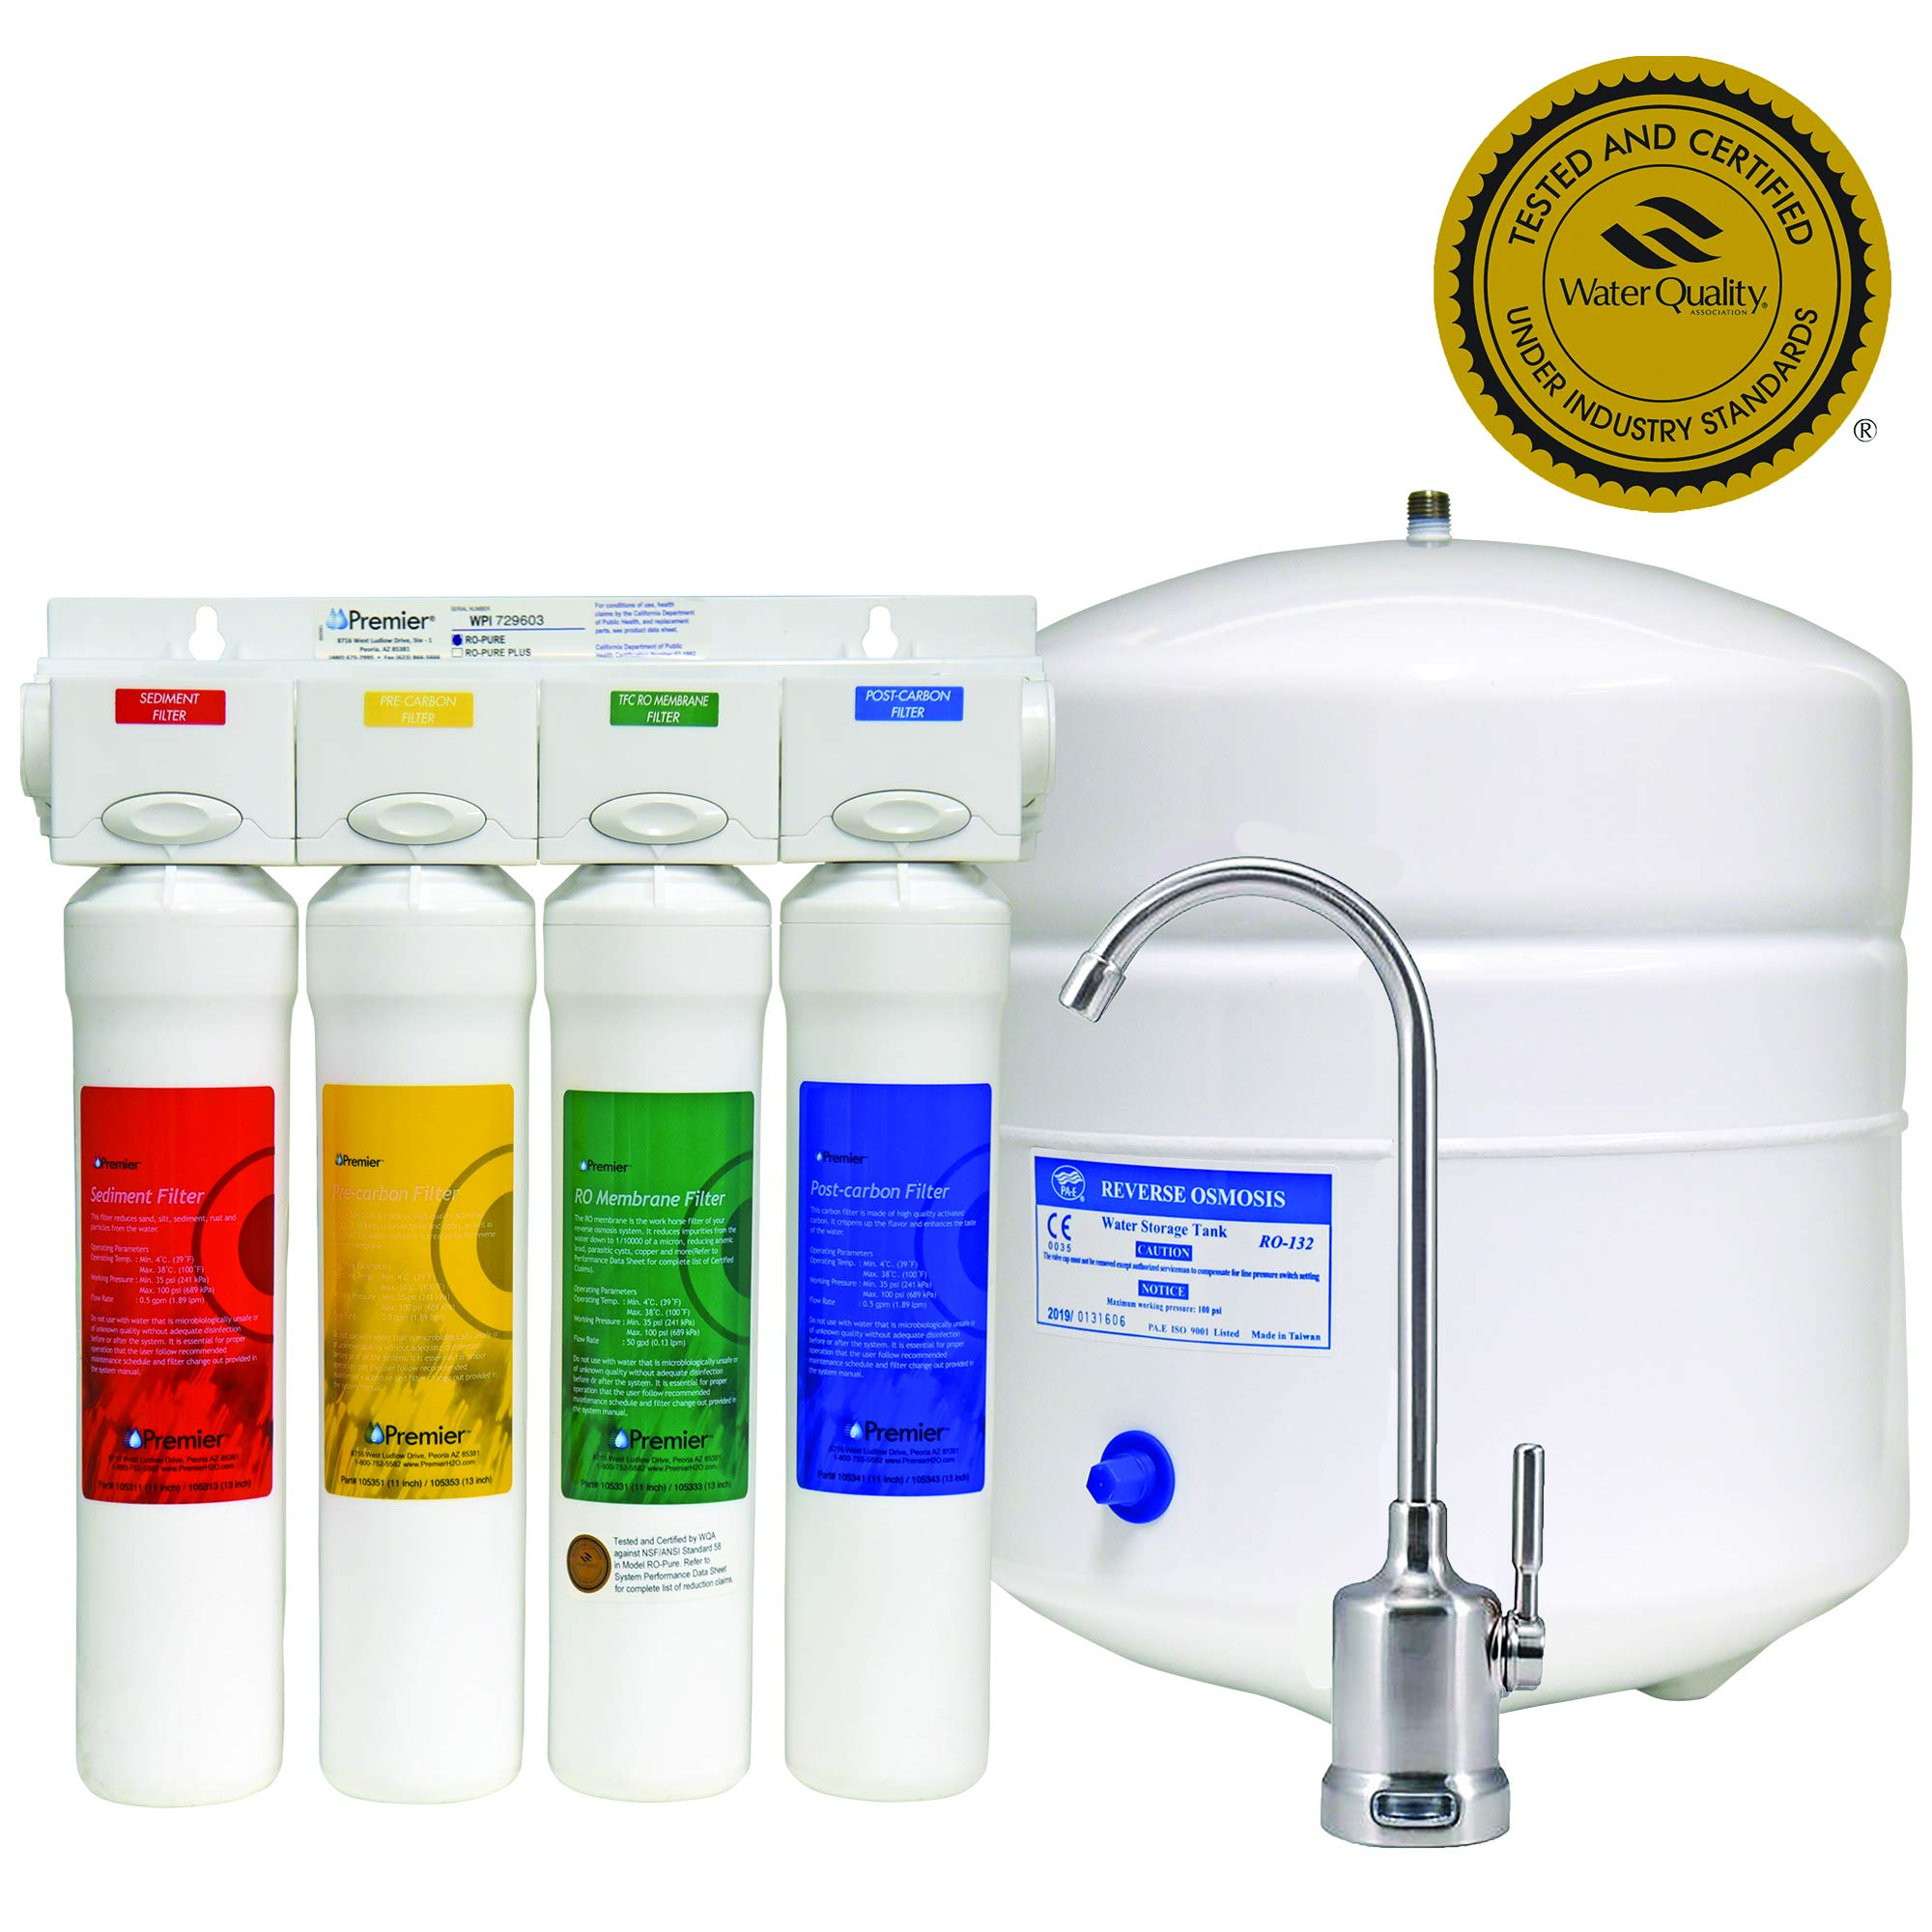 Watts Premier WP531407, RO-Pure 4-Stage Reverse Osmosis Water Filtration System, Brushed Nickel by Watts Premier